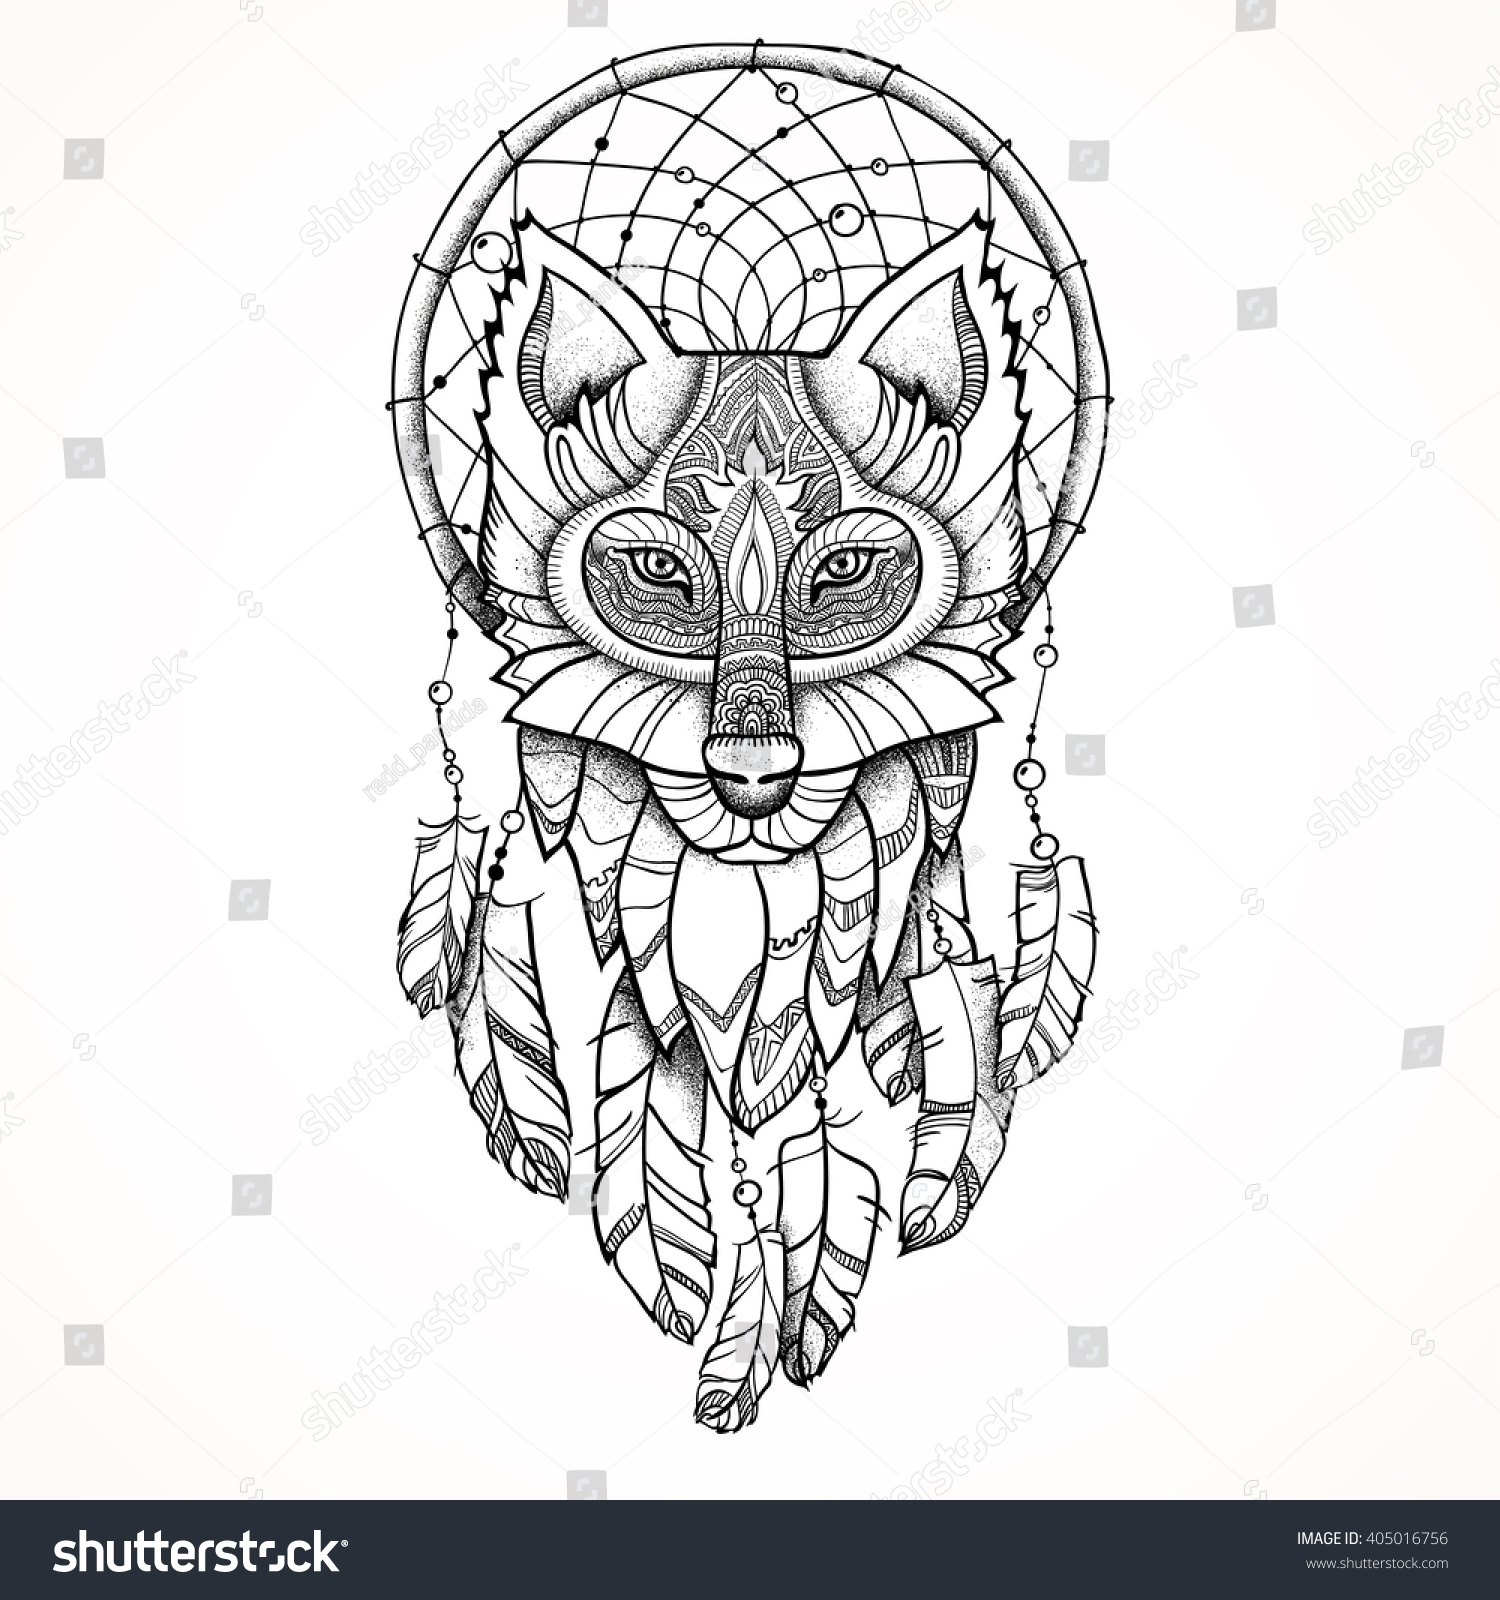 How To Draw A Totem Pole Wolf